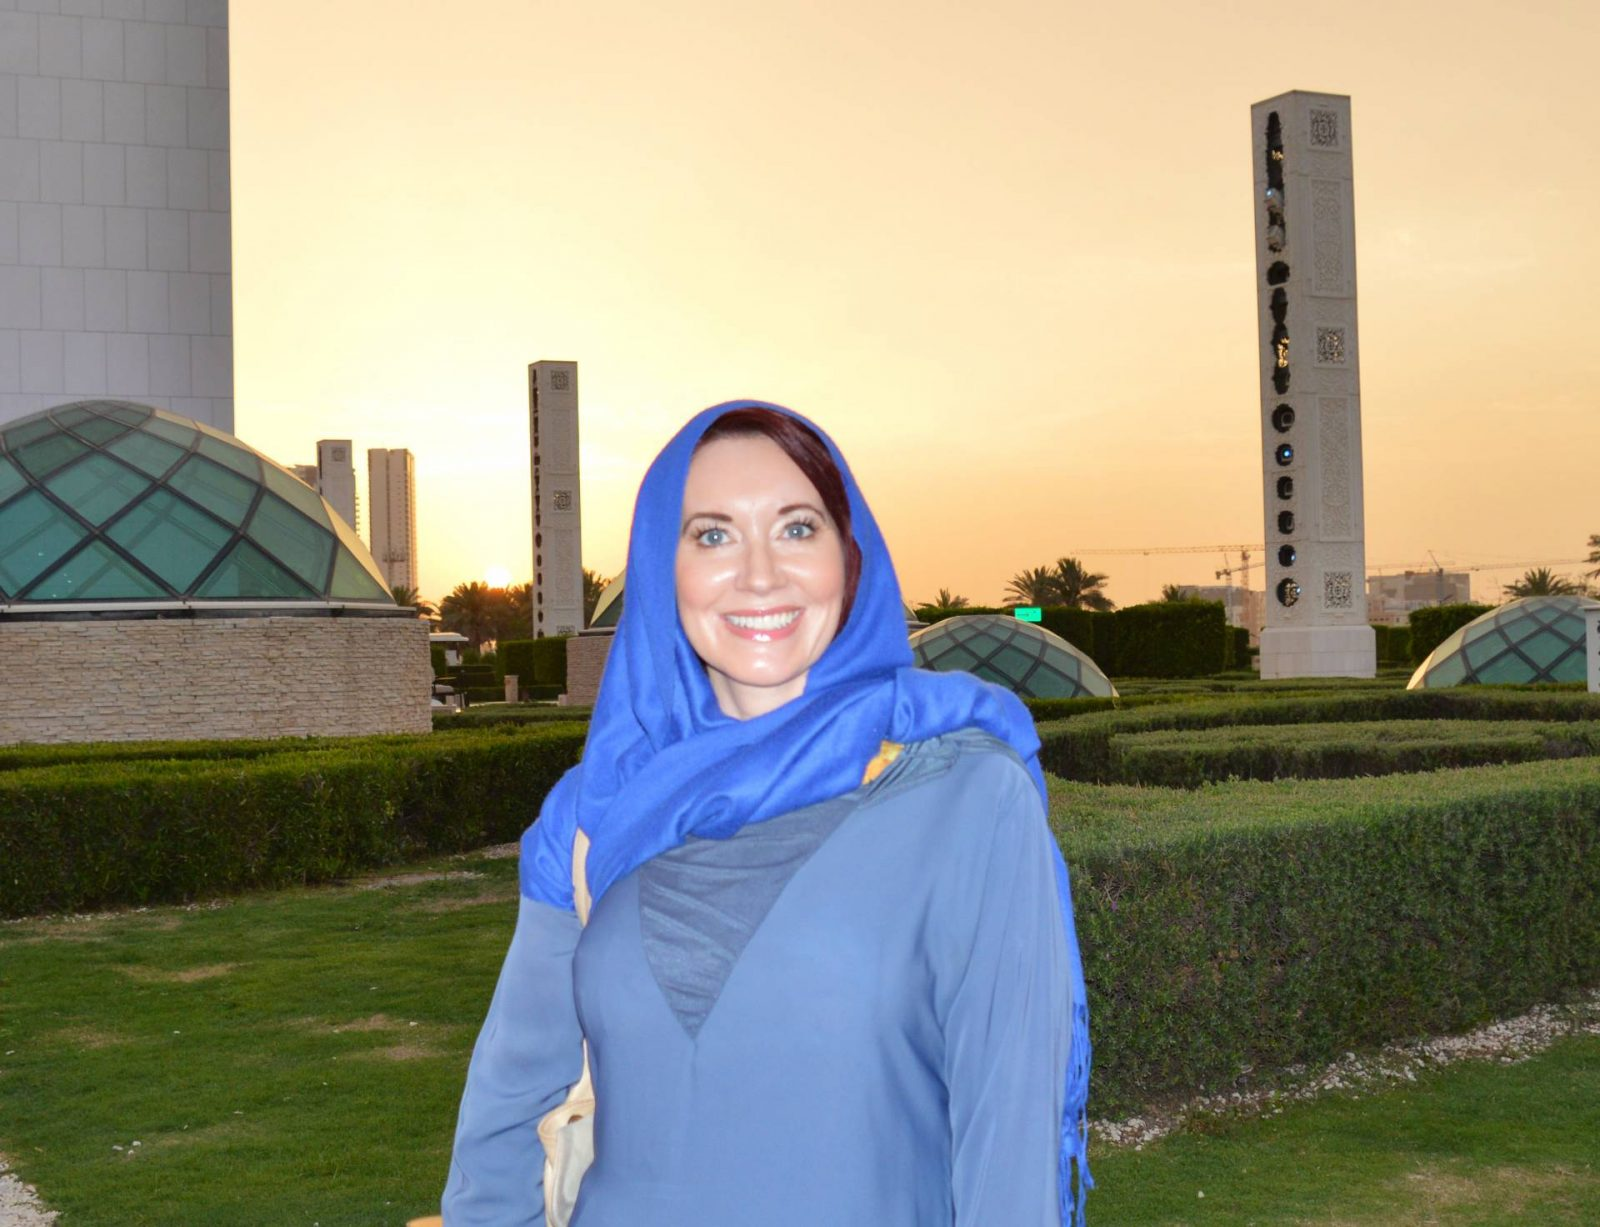 Visiting the Louvre Abu Dhabi and Sheikh Zayed Grand Mosque, sunset at Sheikh Zayed mosque